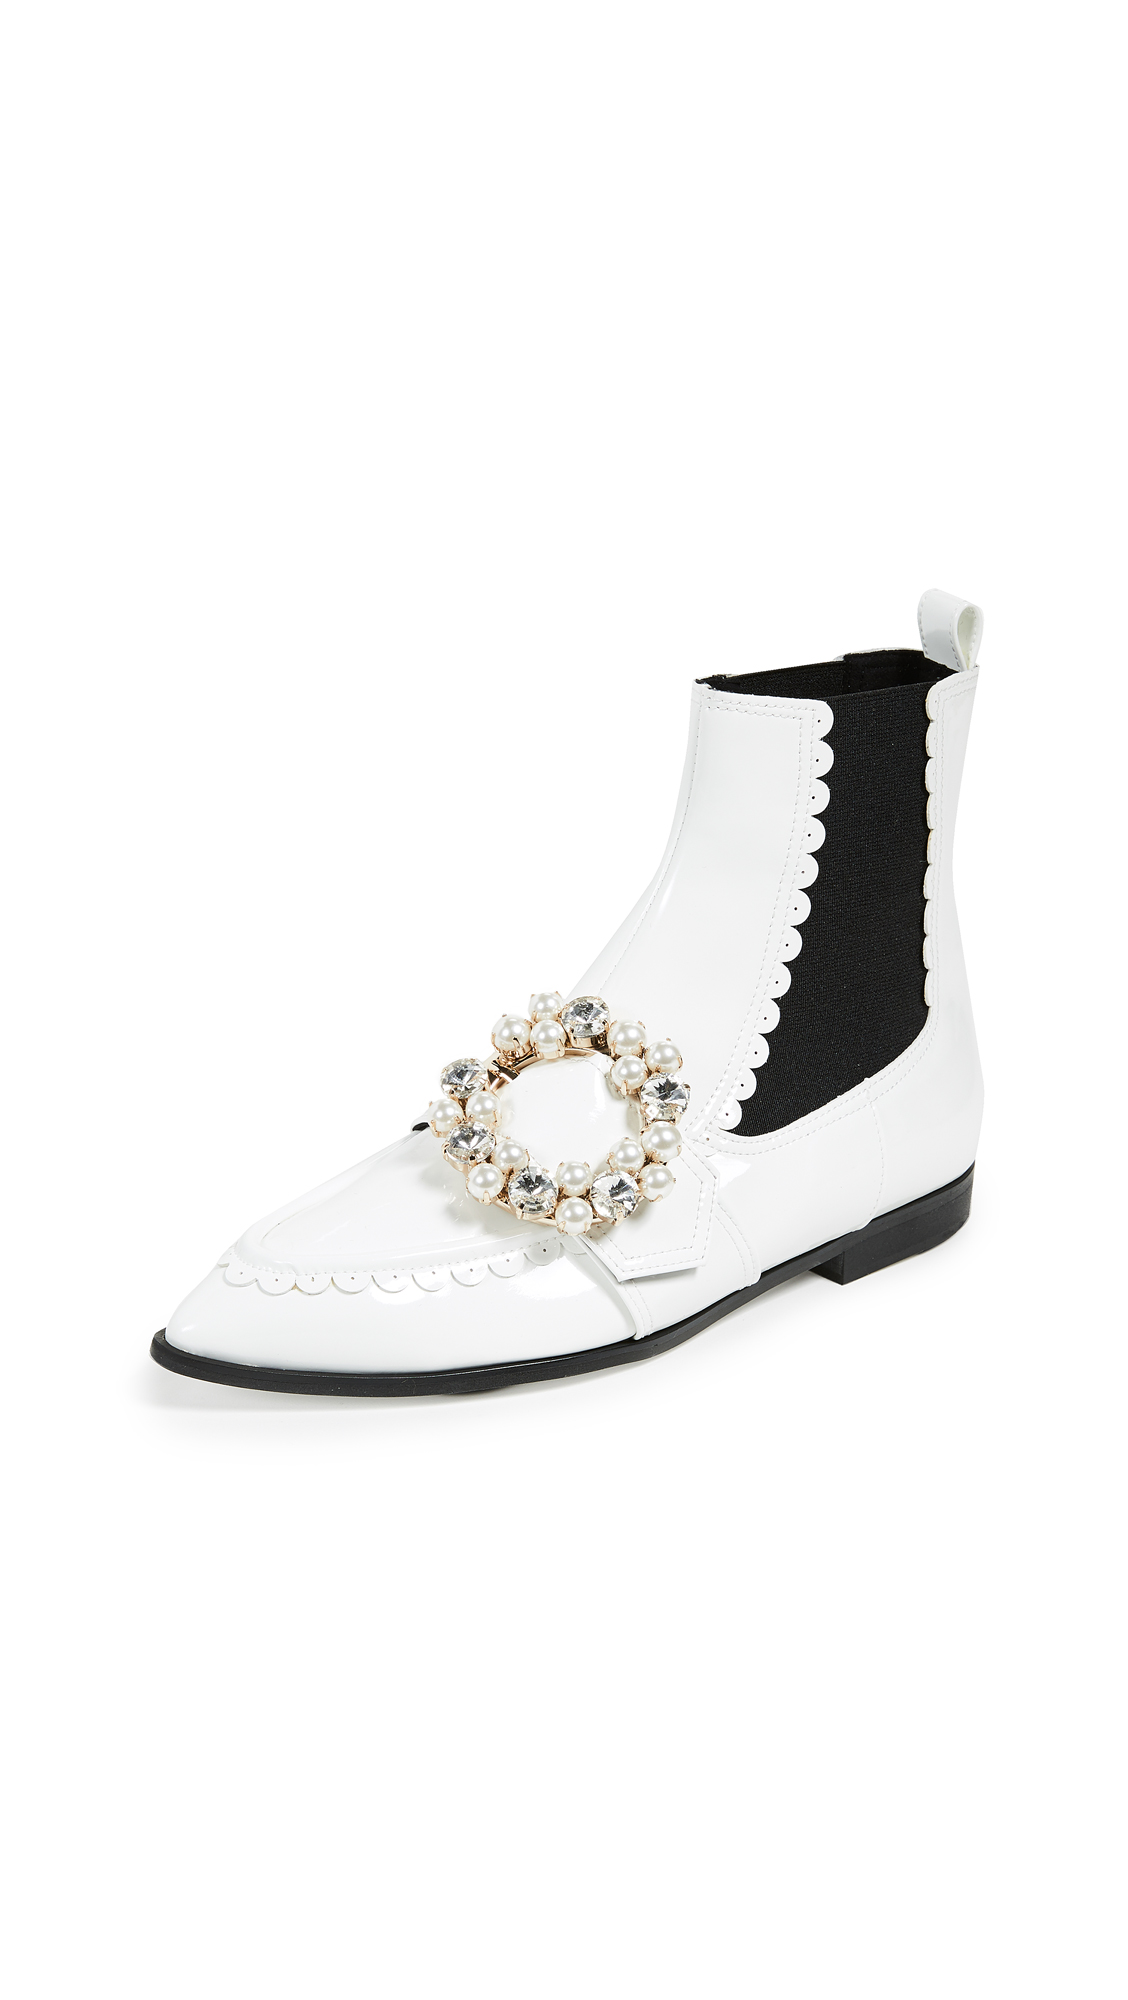 Suecomma Bonnie Jewel Detailed Pointy Toe Ankle Booties - White/White